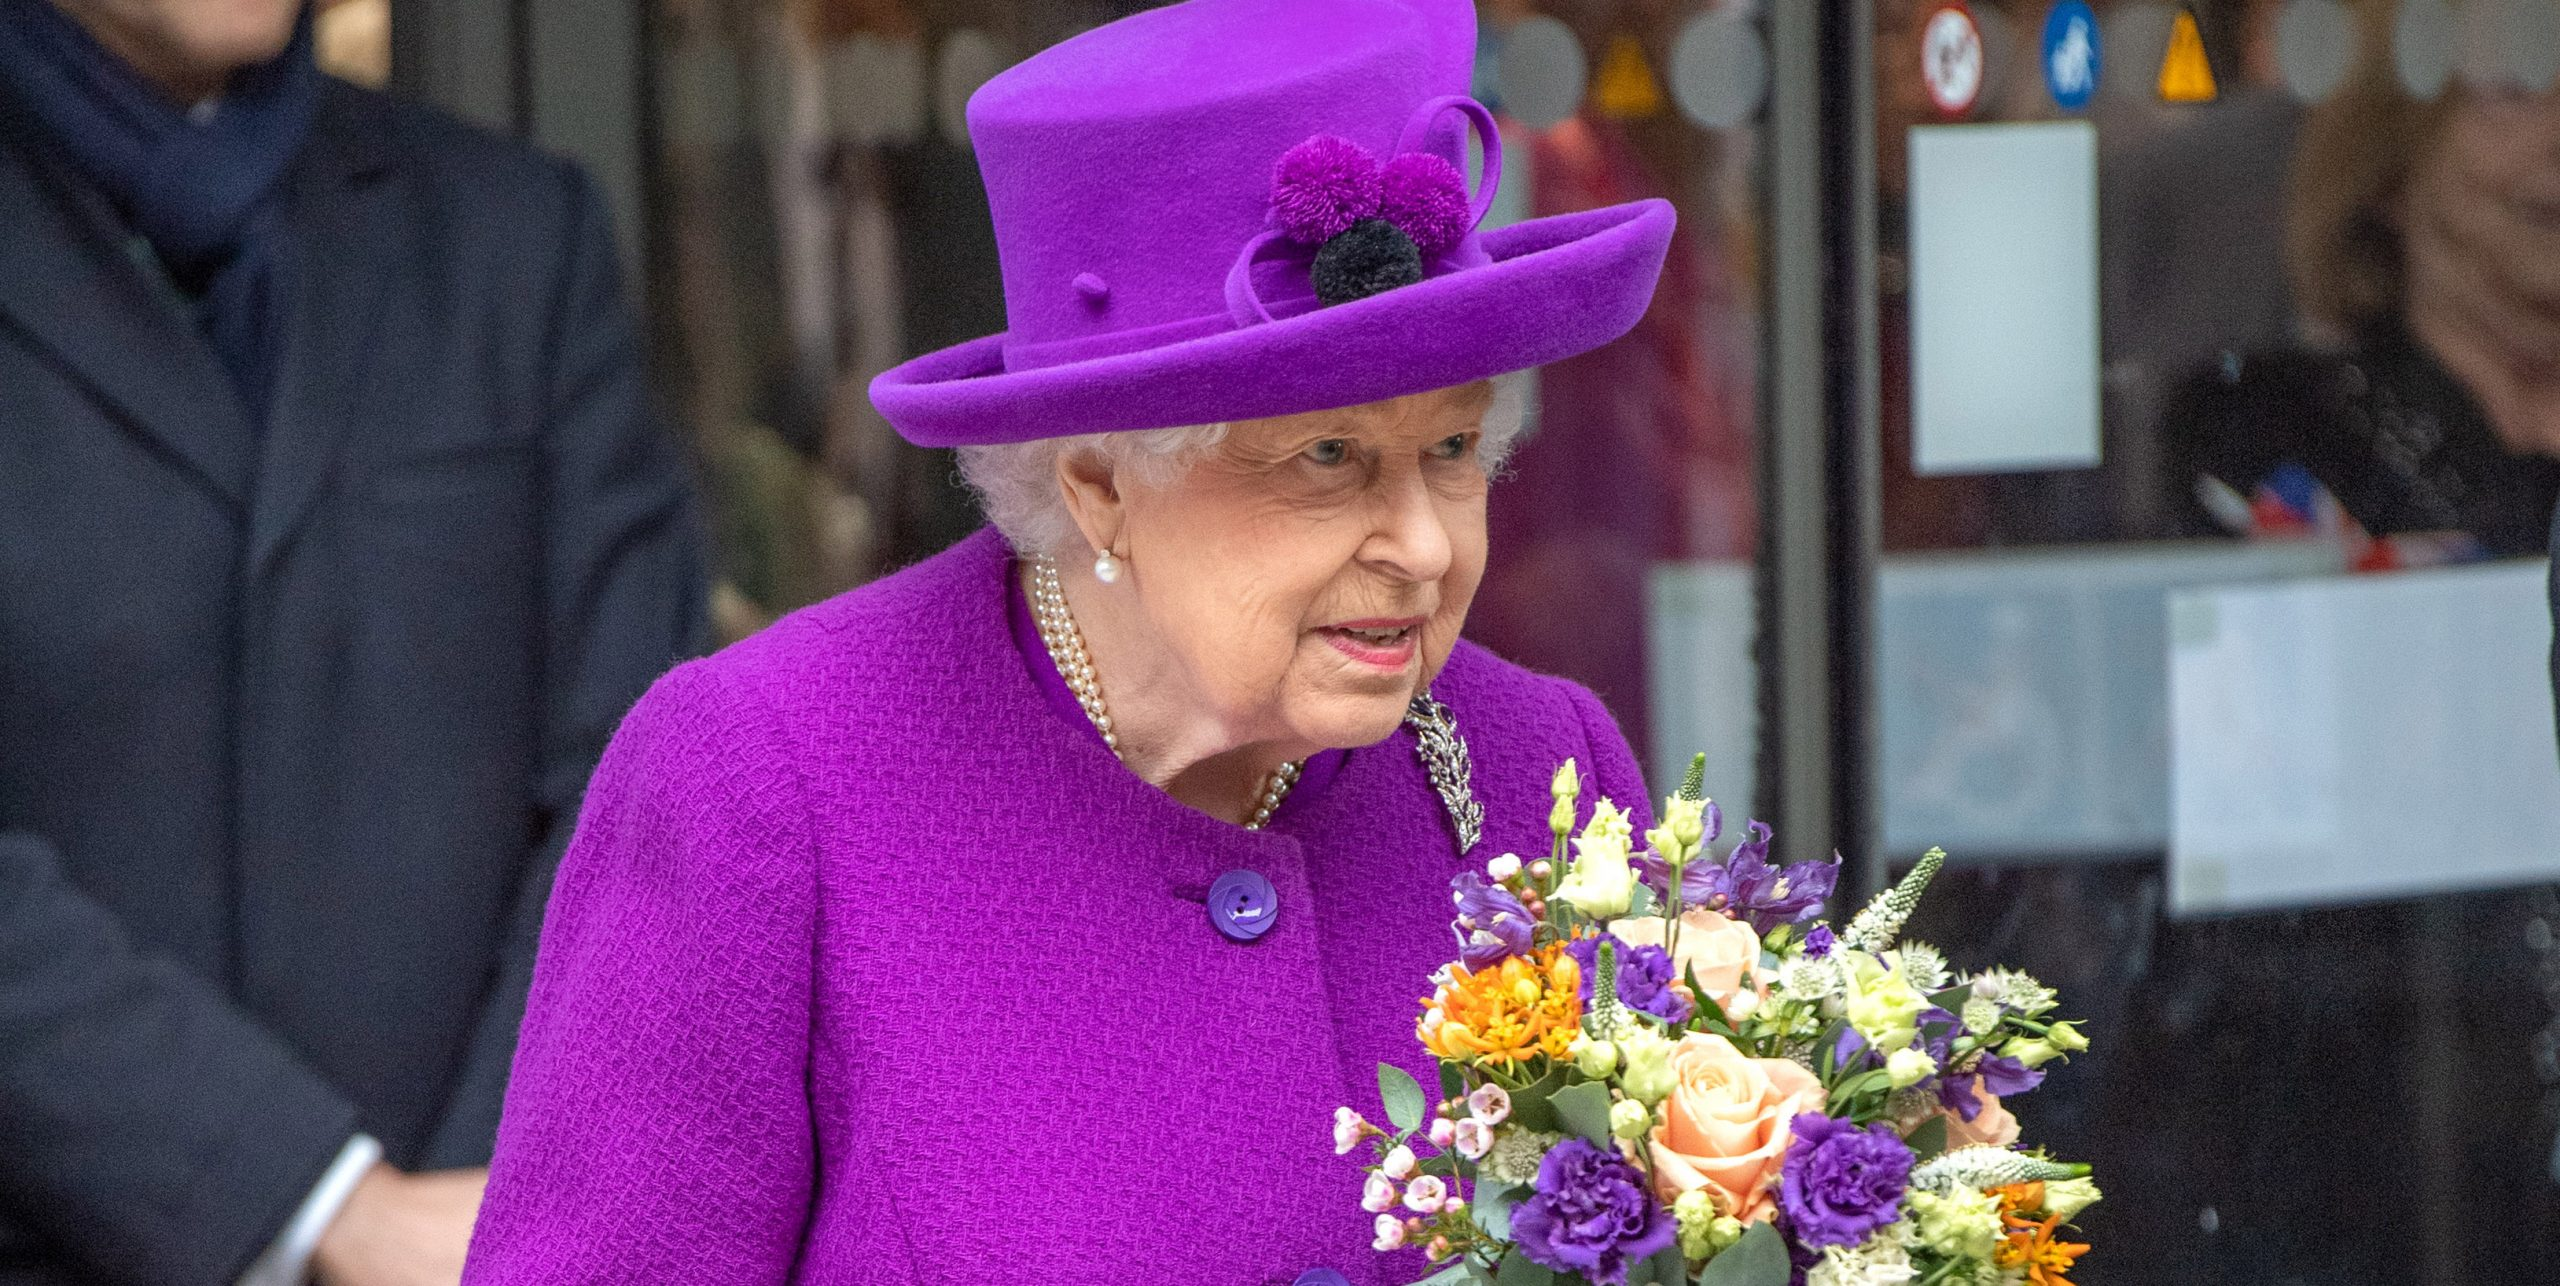 Queen vows to carry on with royal duties despite coronavirus fears